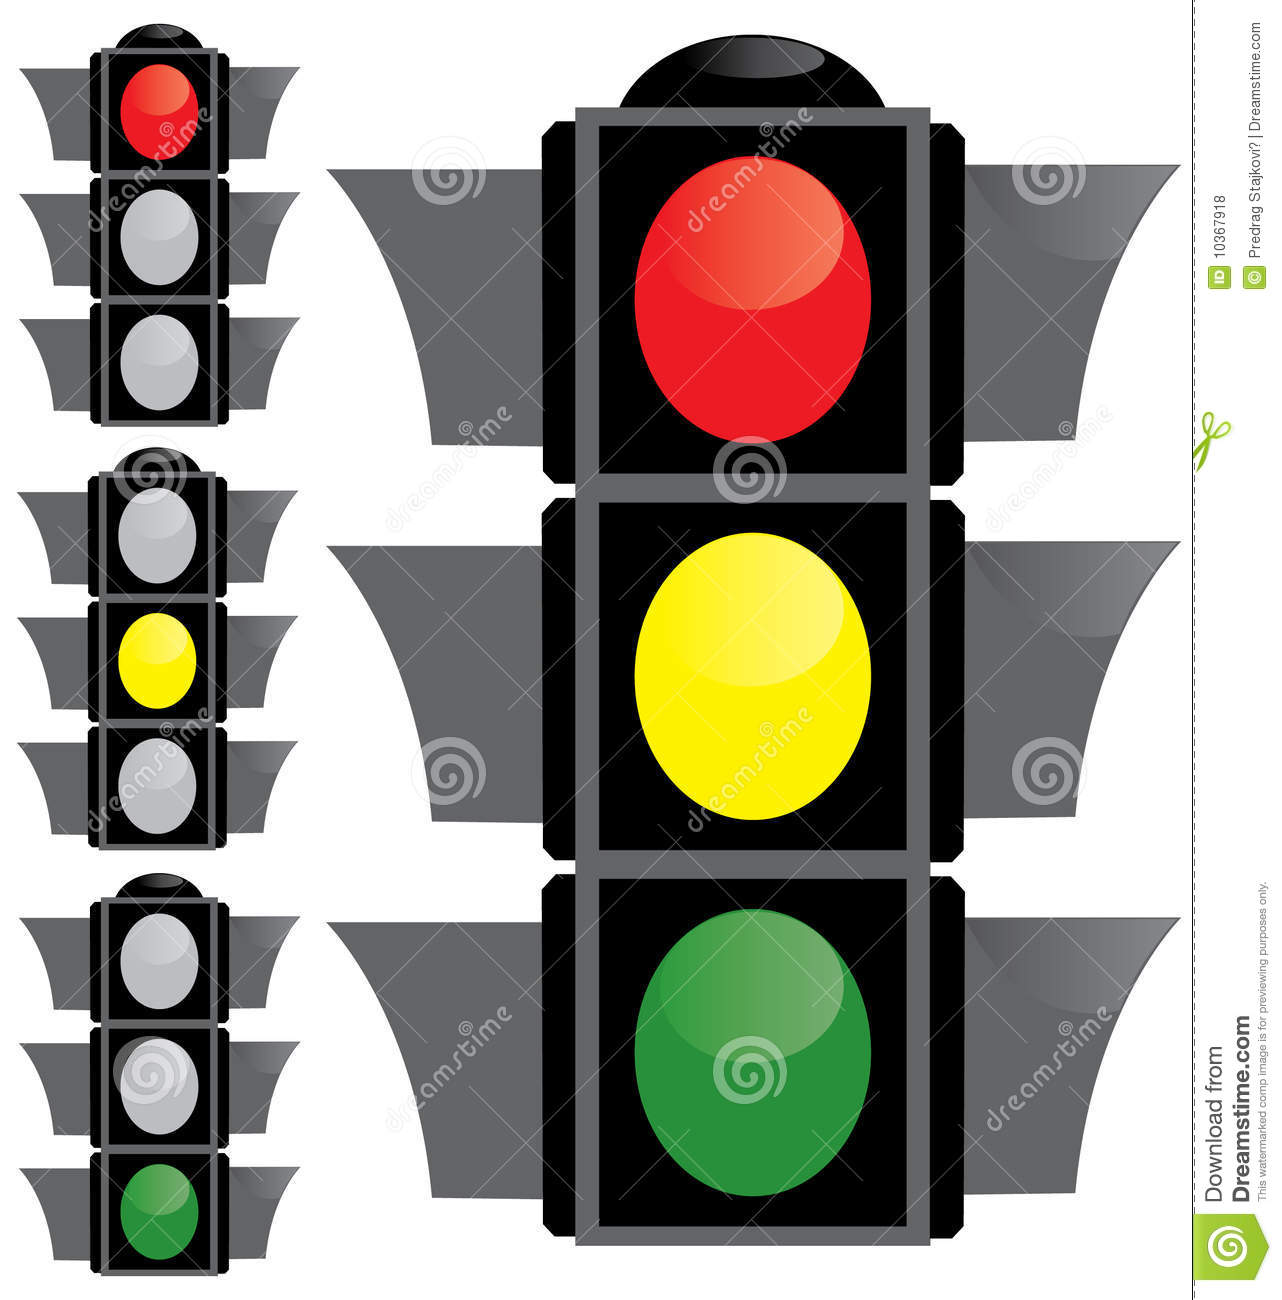 Semaphore Or Traffic Light Royalty Free Stock Photos